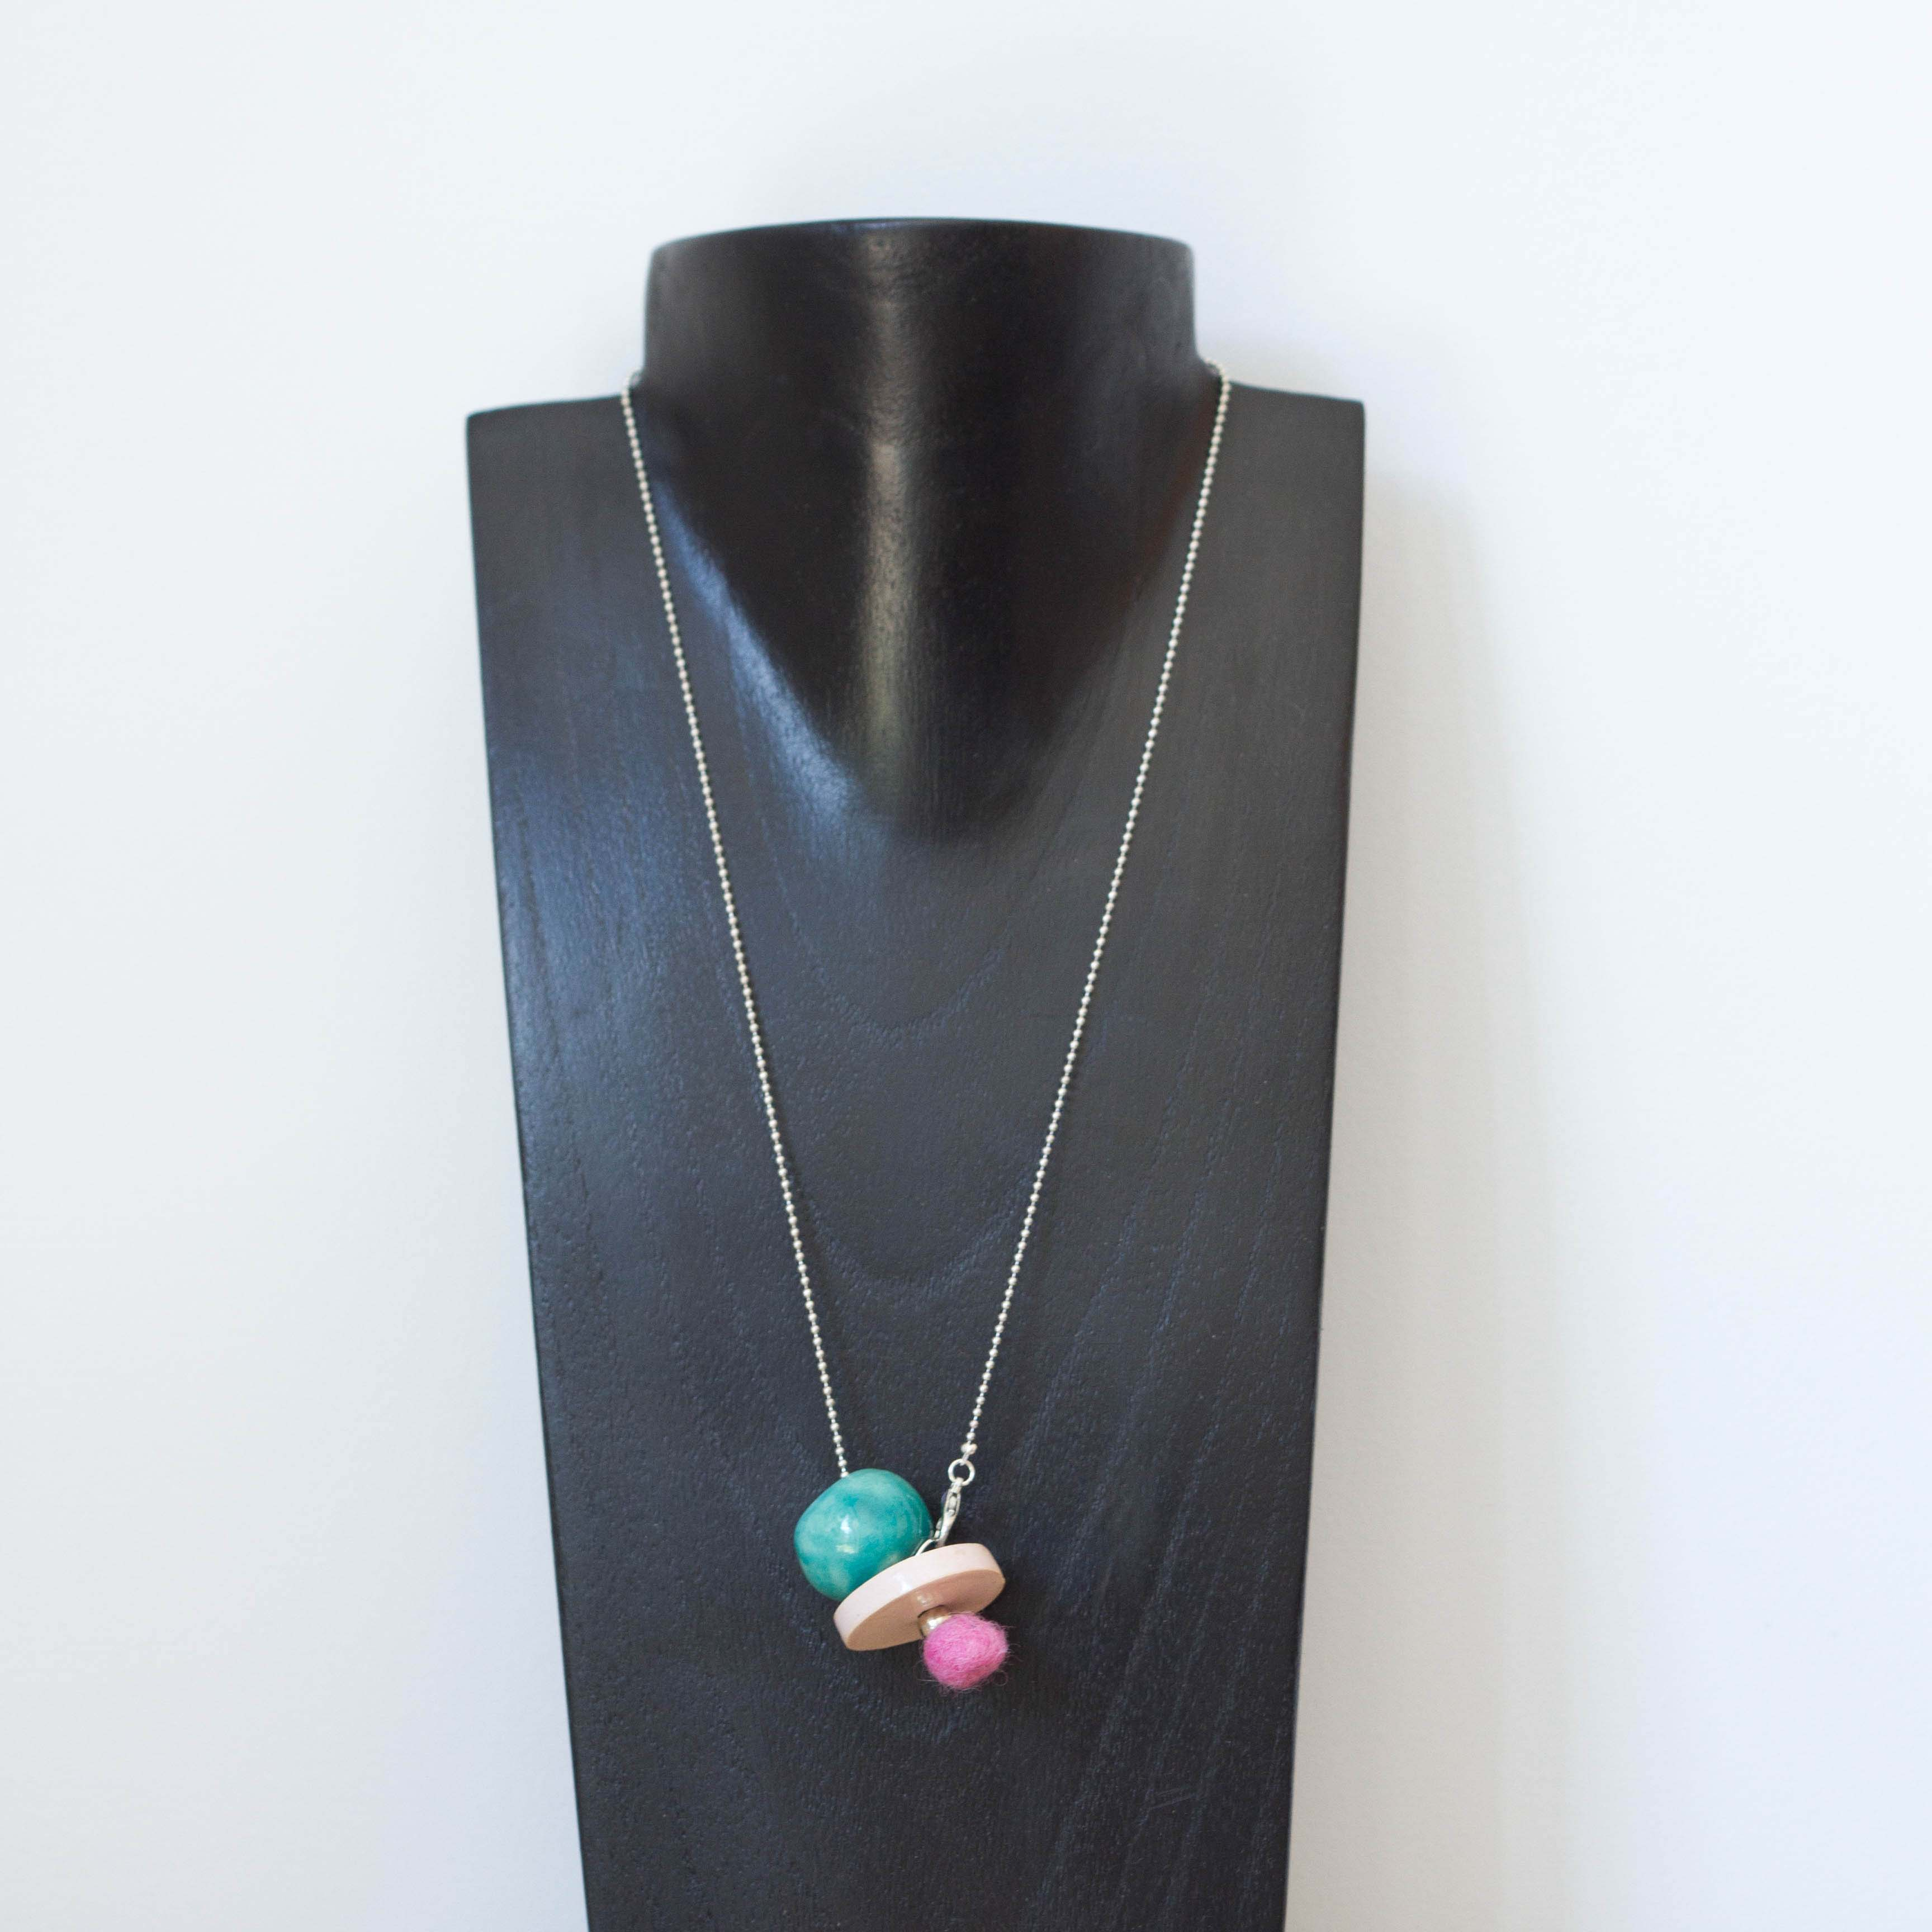 Collier Pom pom turquoise rose -il fait si beau-ceramique made in france